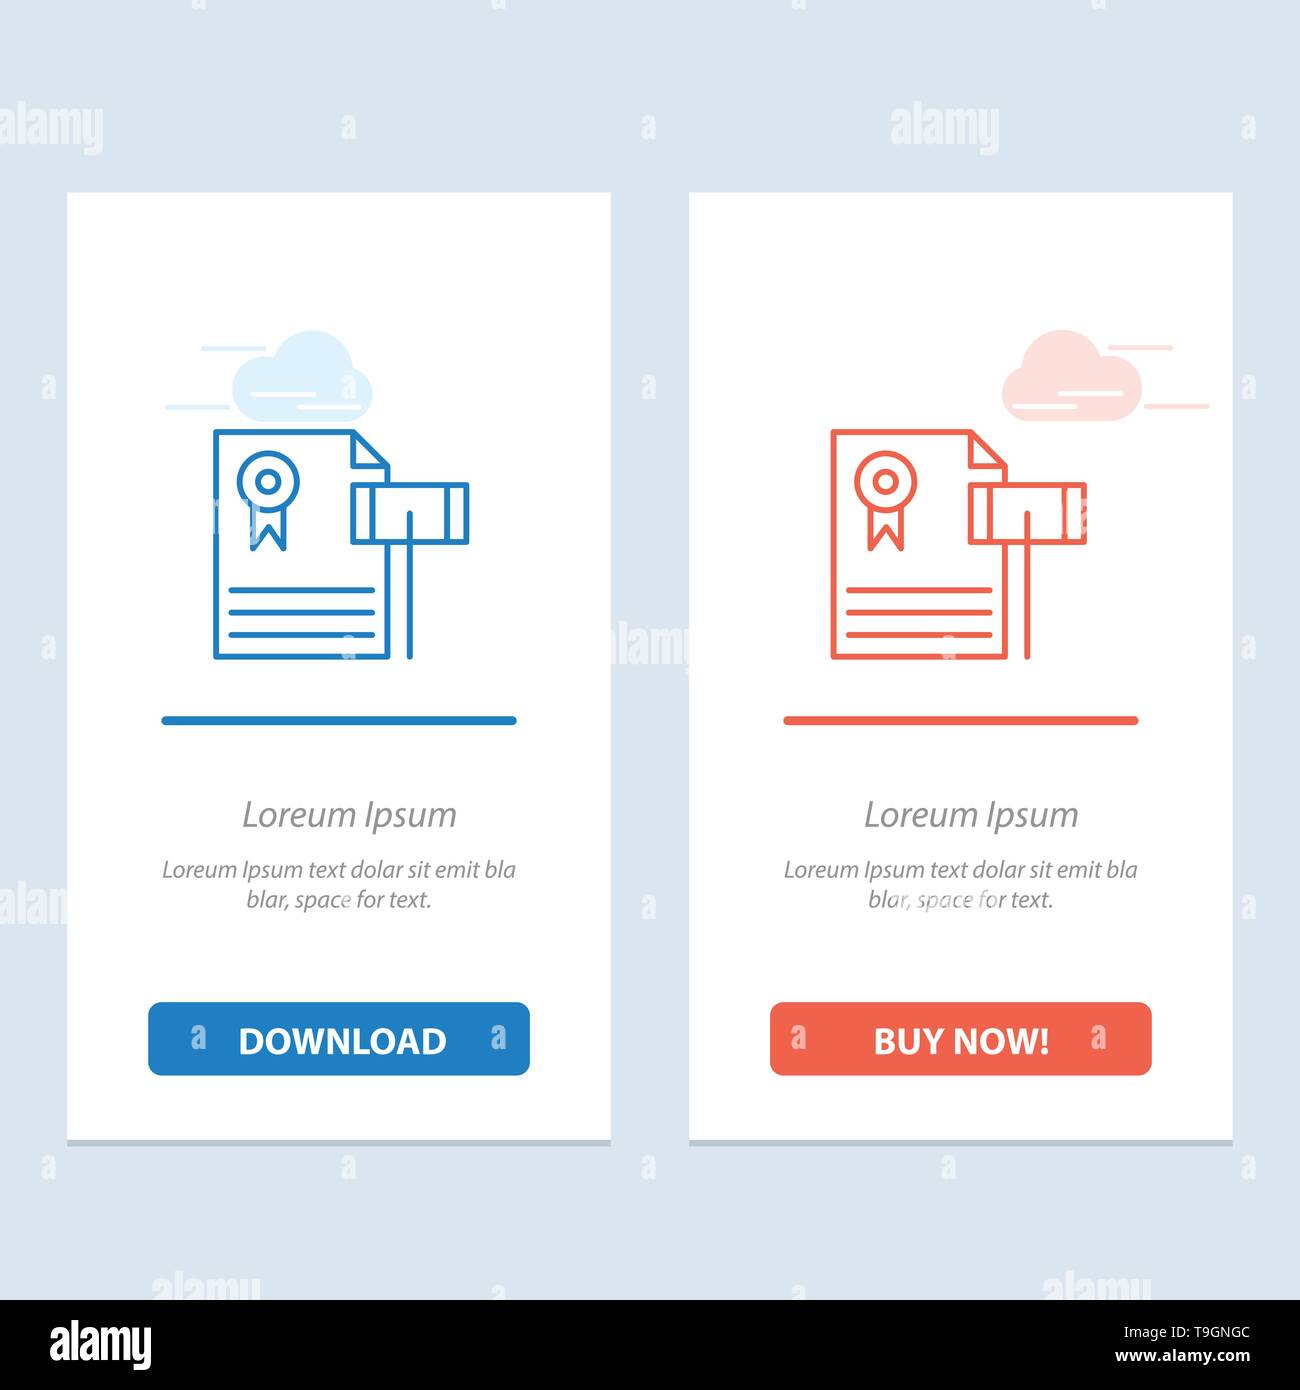 Auction, Vintage, Expensive, Gravel, Judge  Blue and Red Download and Buy Now web Widget Card Template - Stock Image